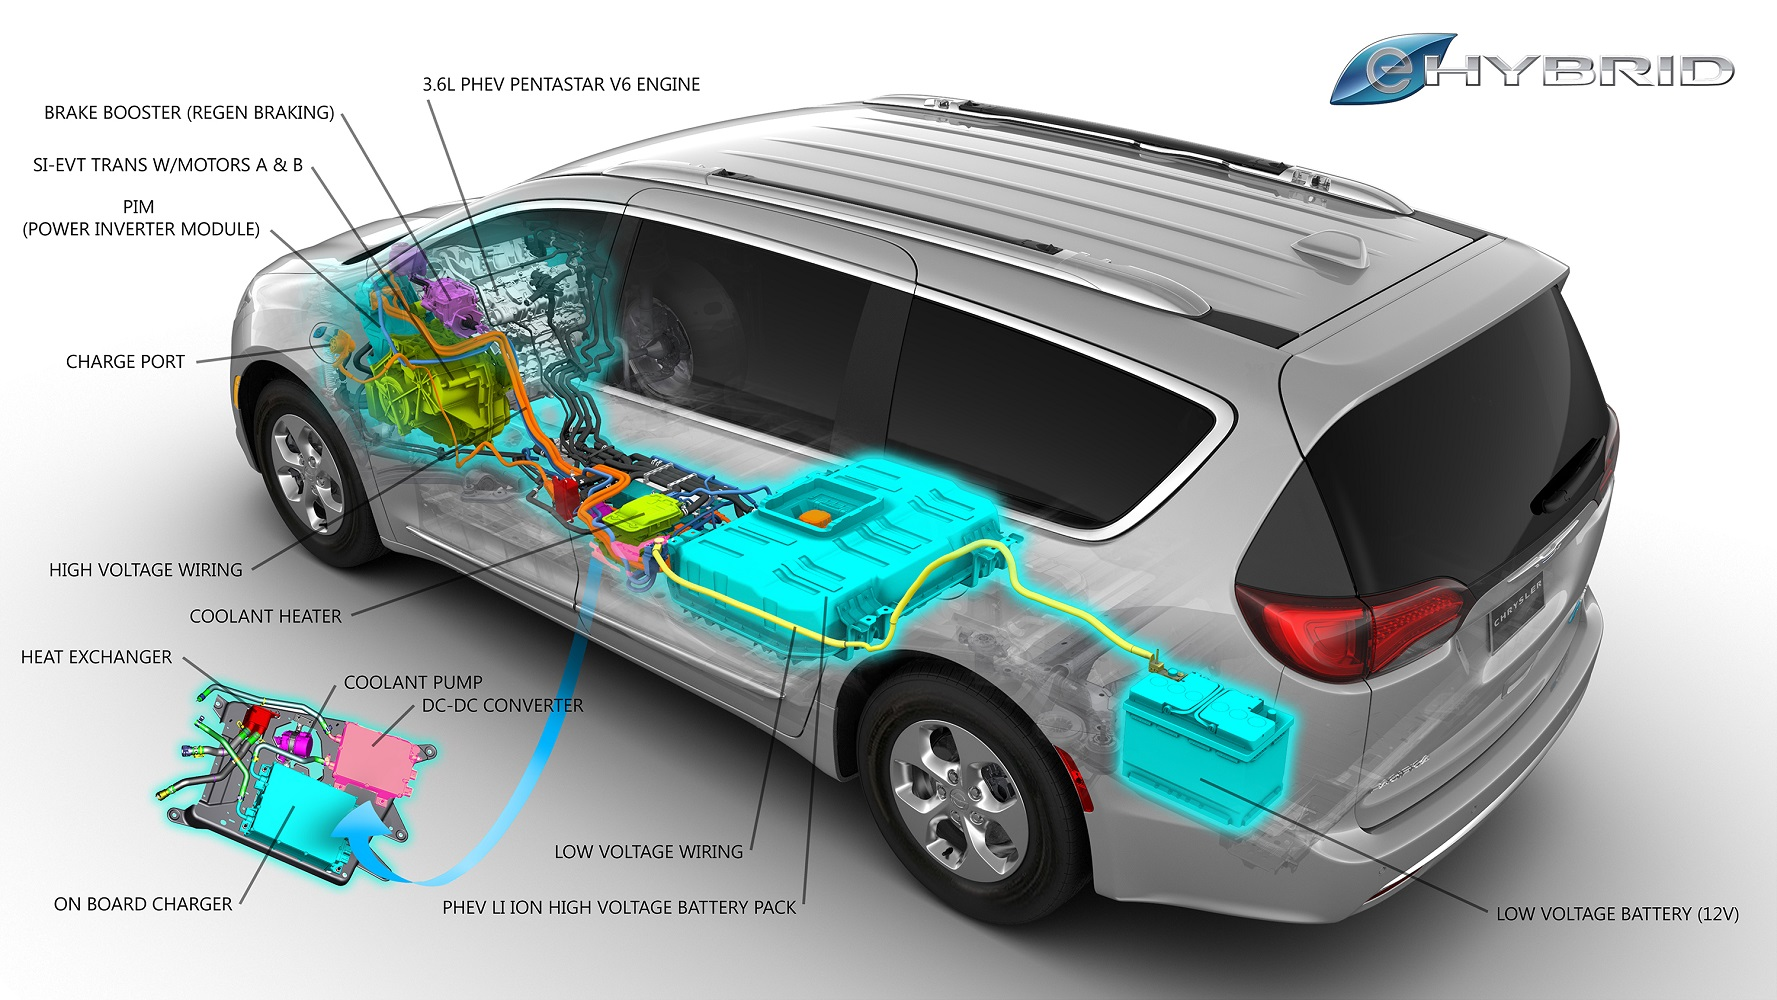 Chrysler Pacifica hybrid system